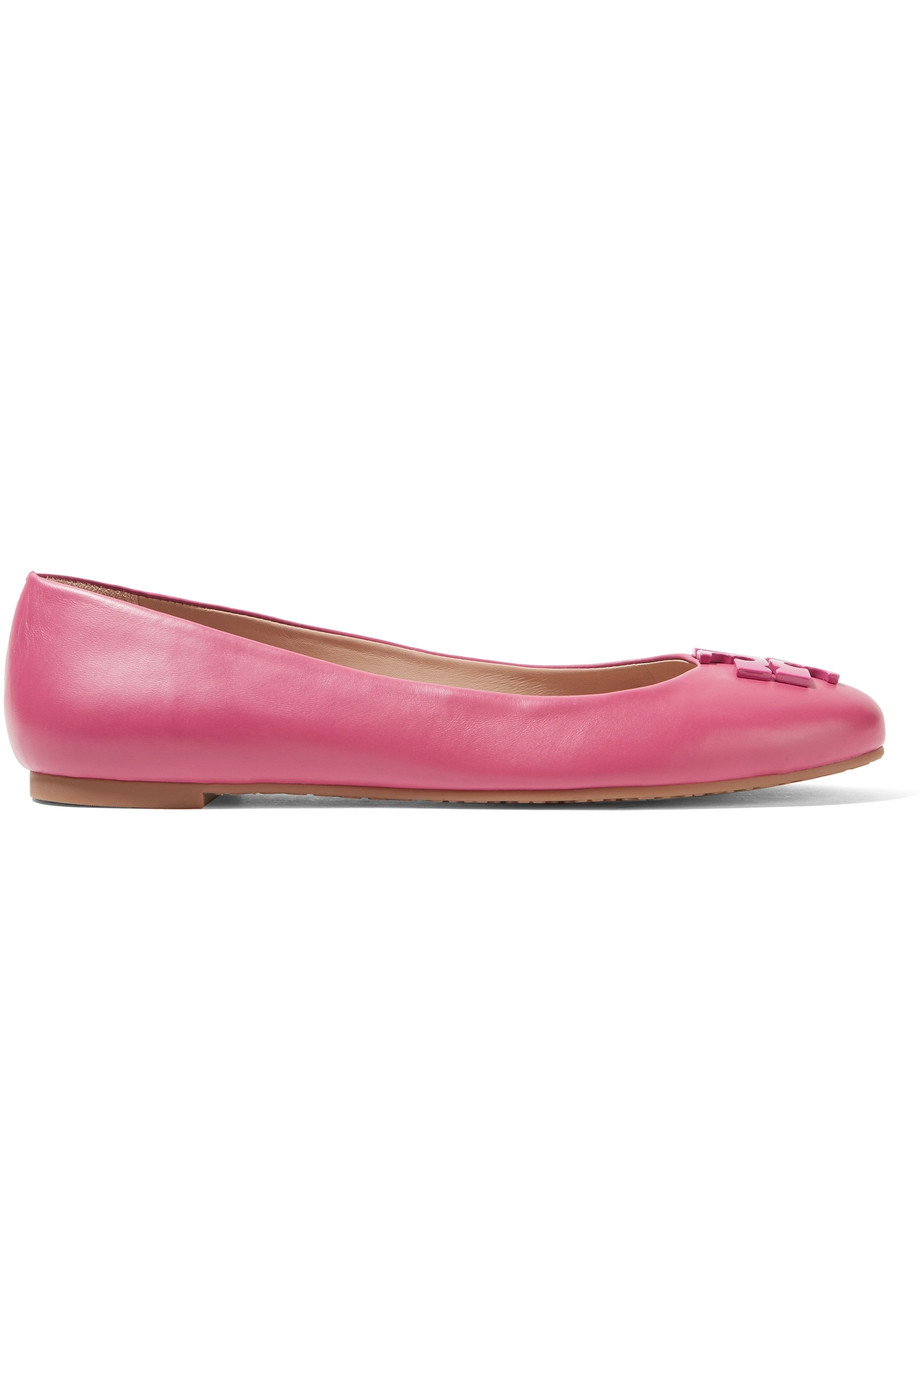 TORY BURCH Lowell Leather Ballet Flats